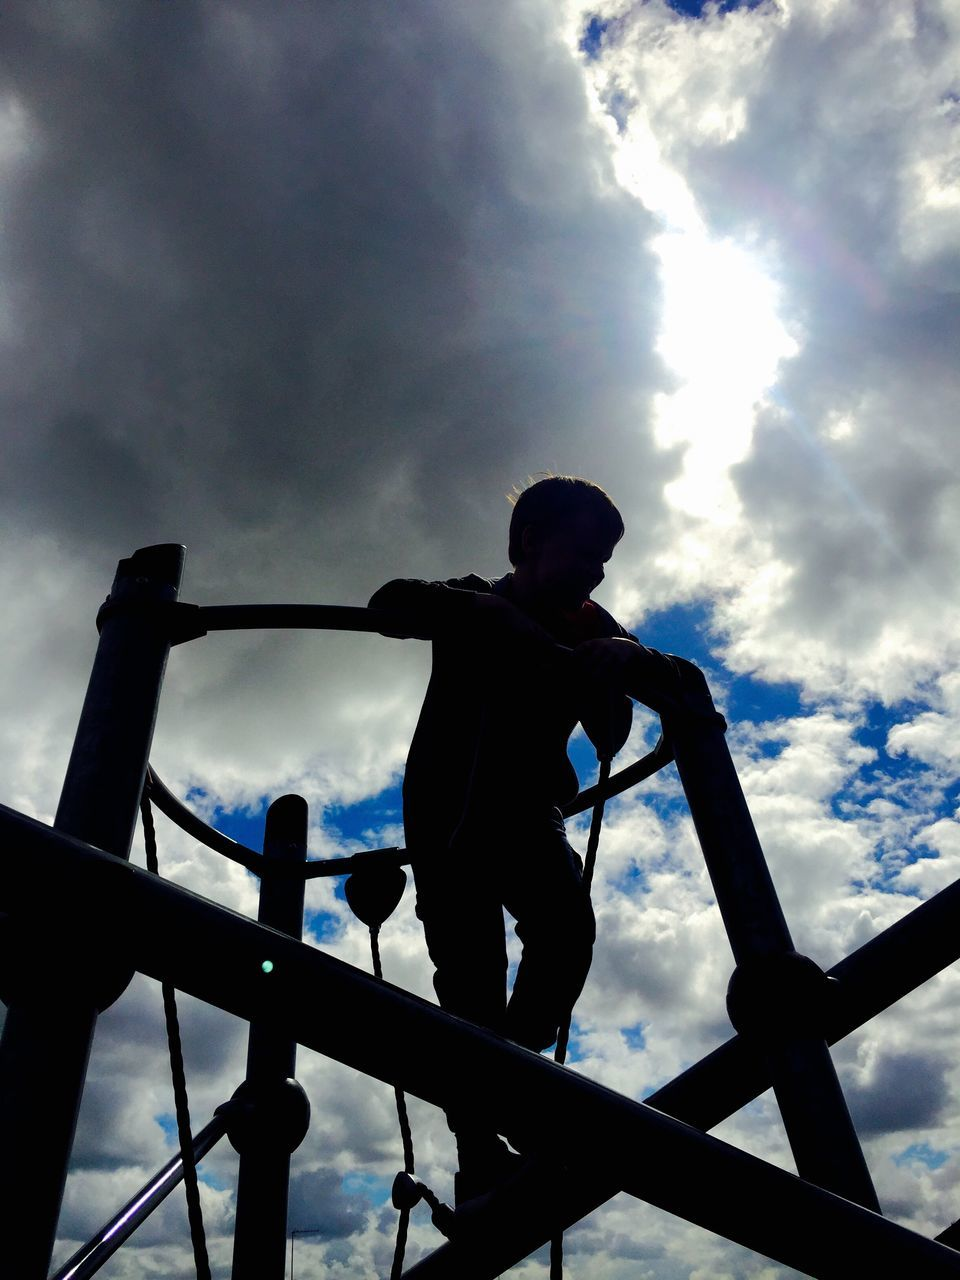 Low Angle View Of Boy On Jungle Gym Against Cloudy Sky At Playground